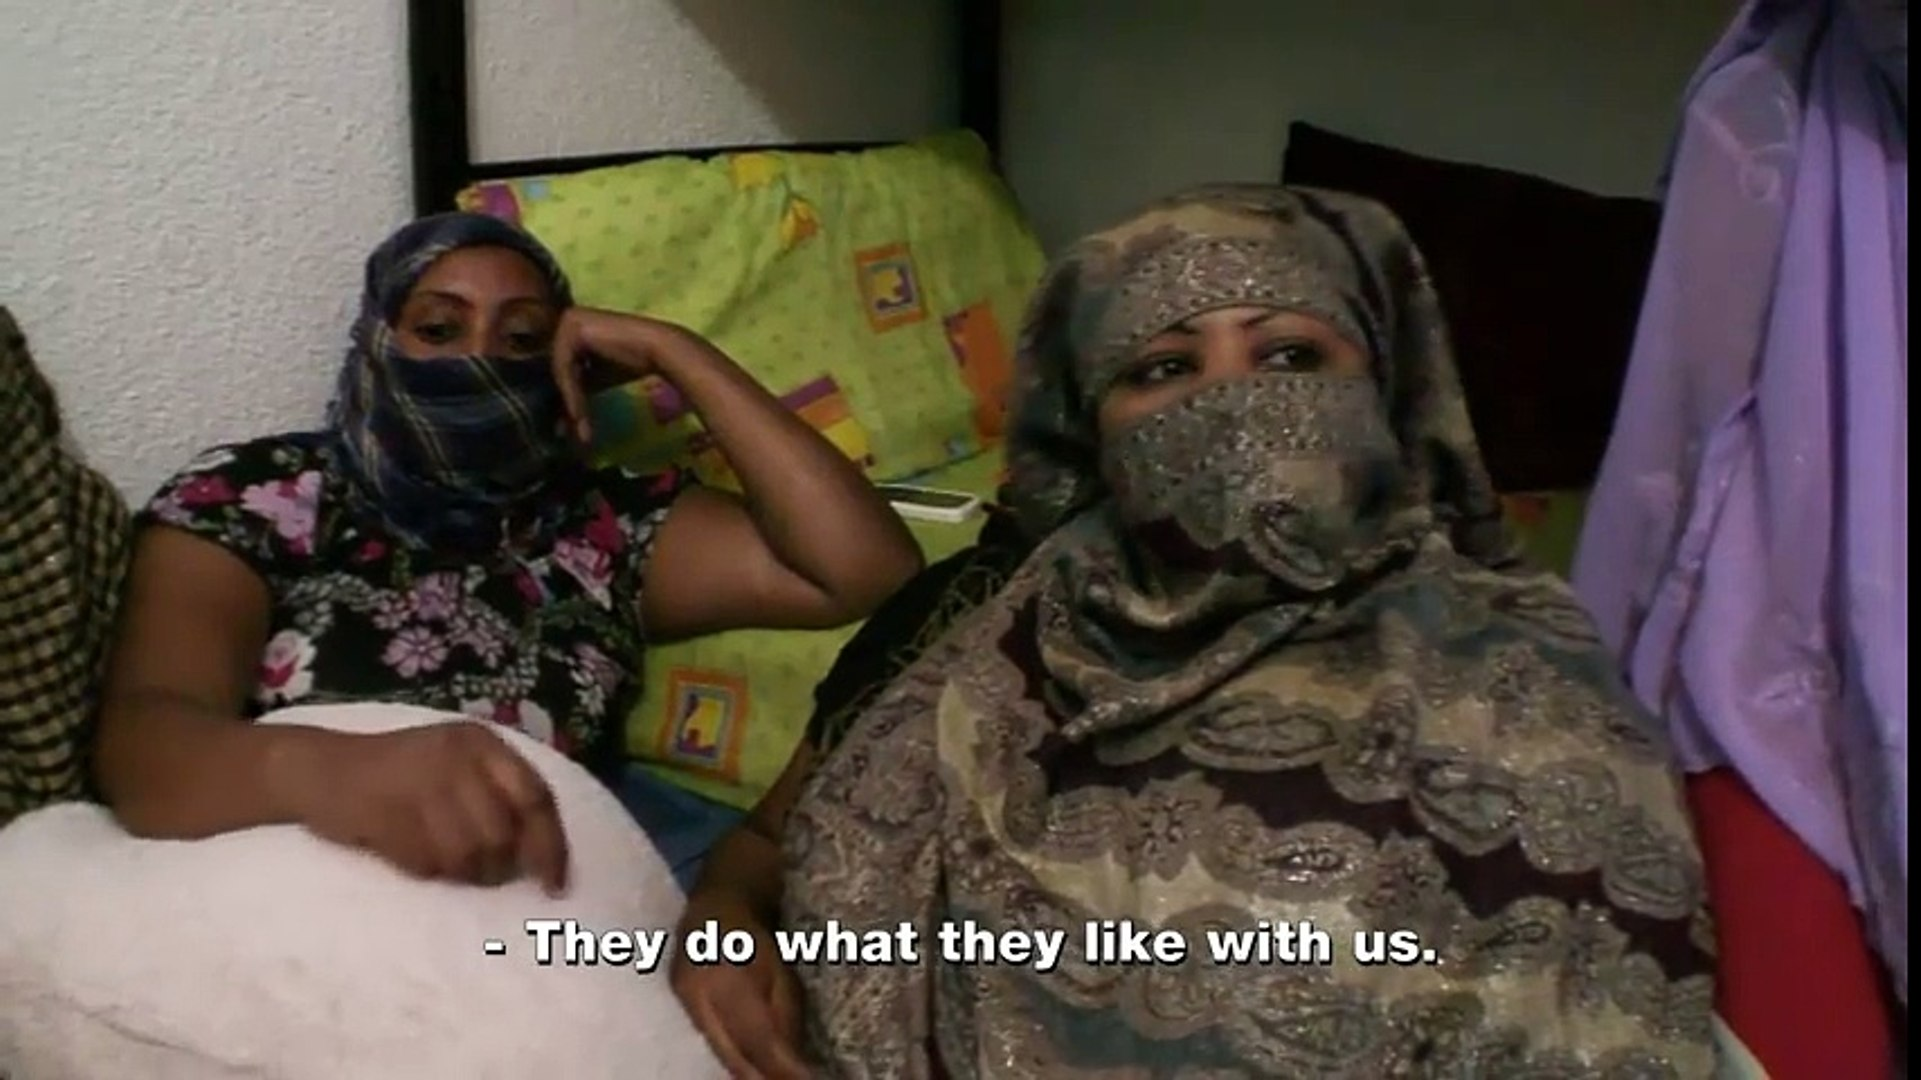 Arab Men Of UAE Prefer Raping African Maids Than Sex With Their Own Wives. Women Reporting Rape Jail